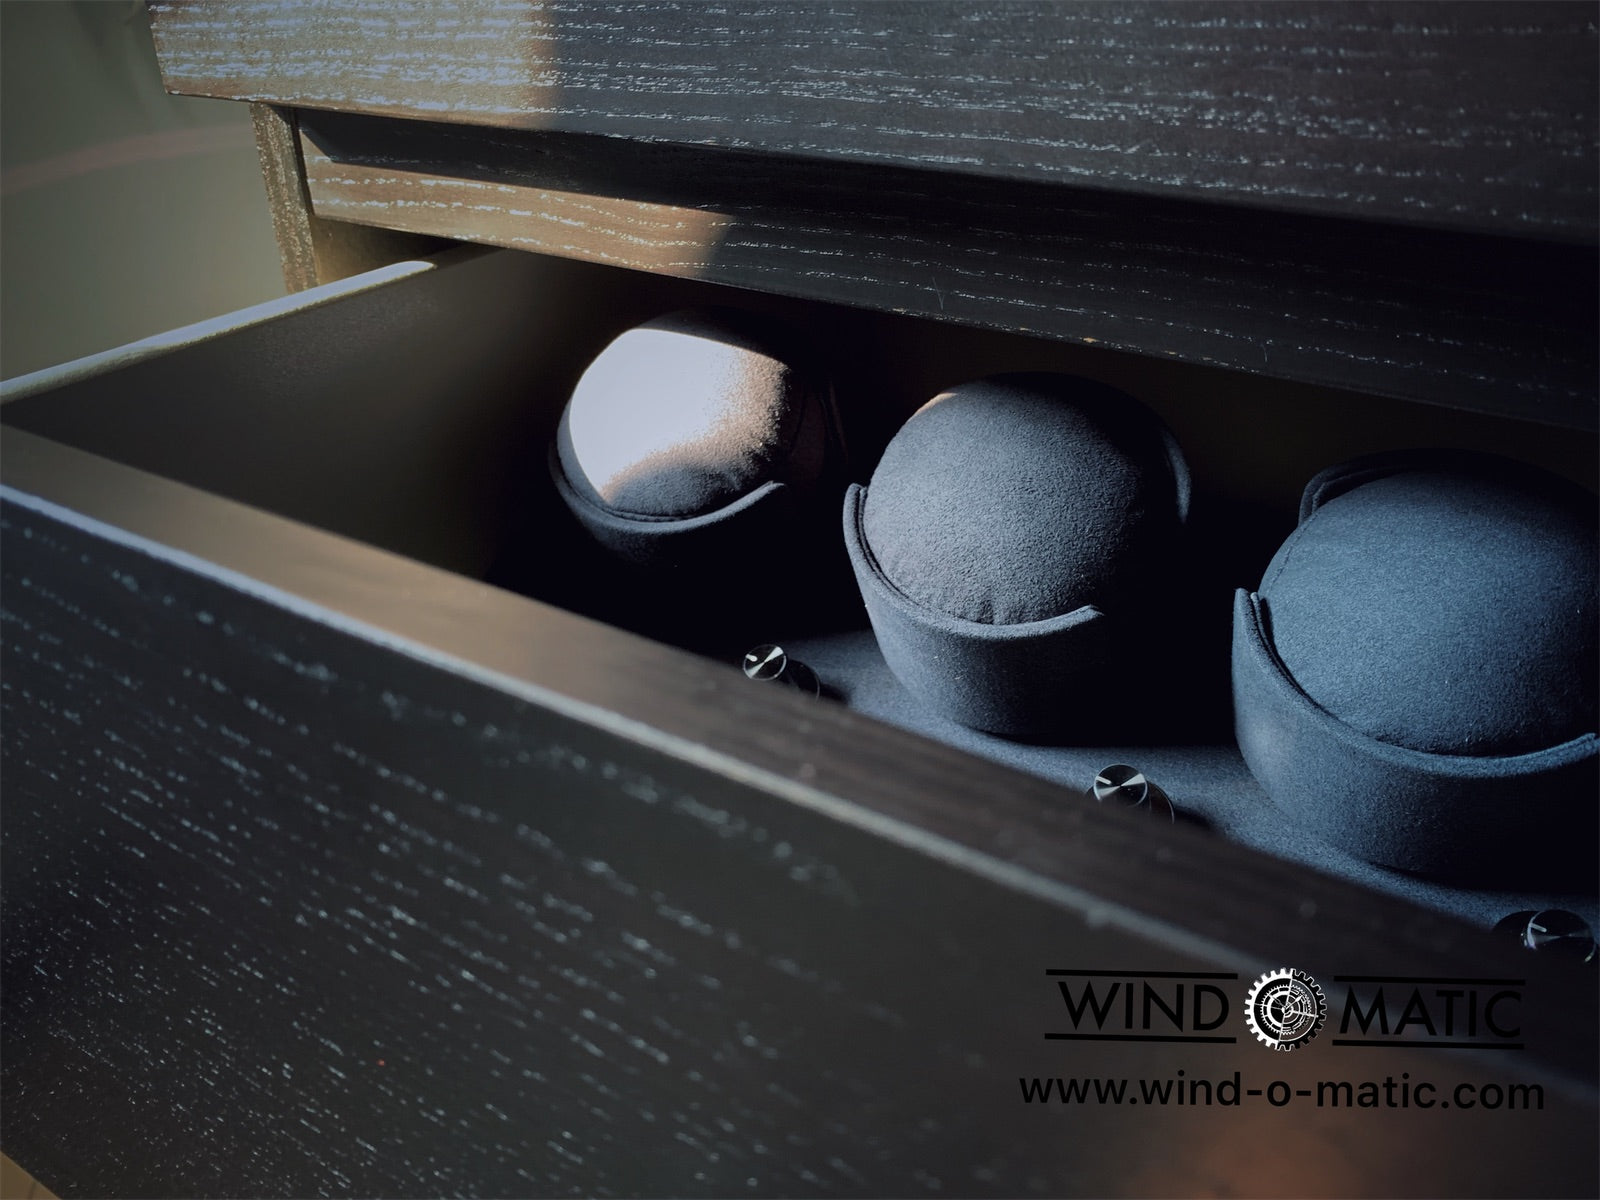 3+0 Bespoke Watch Winder